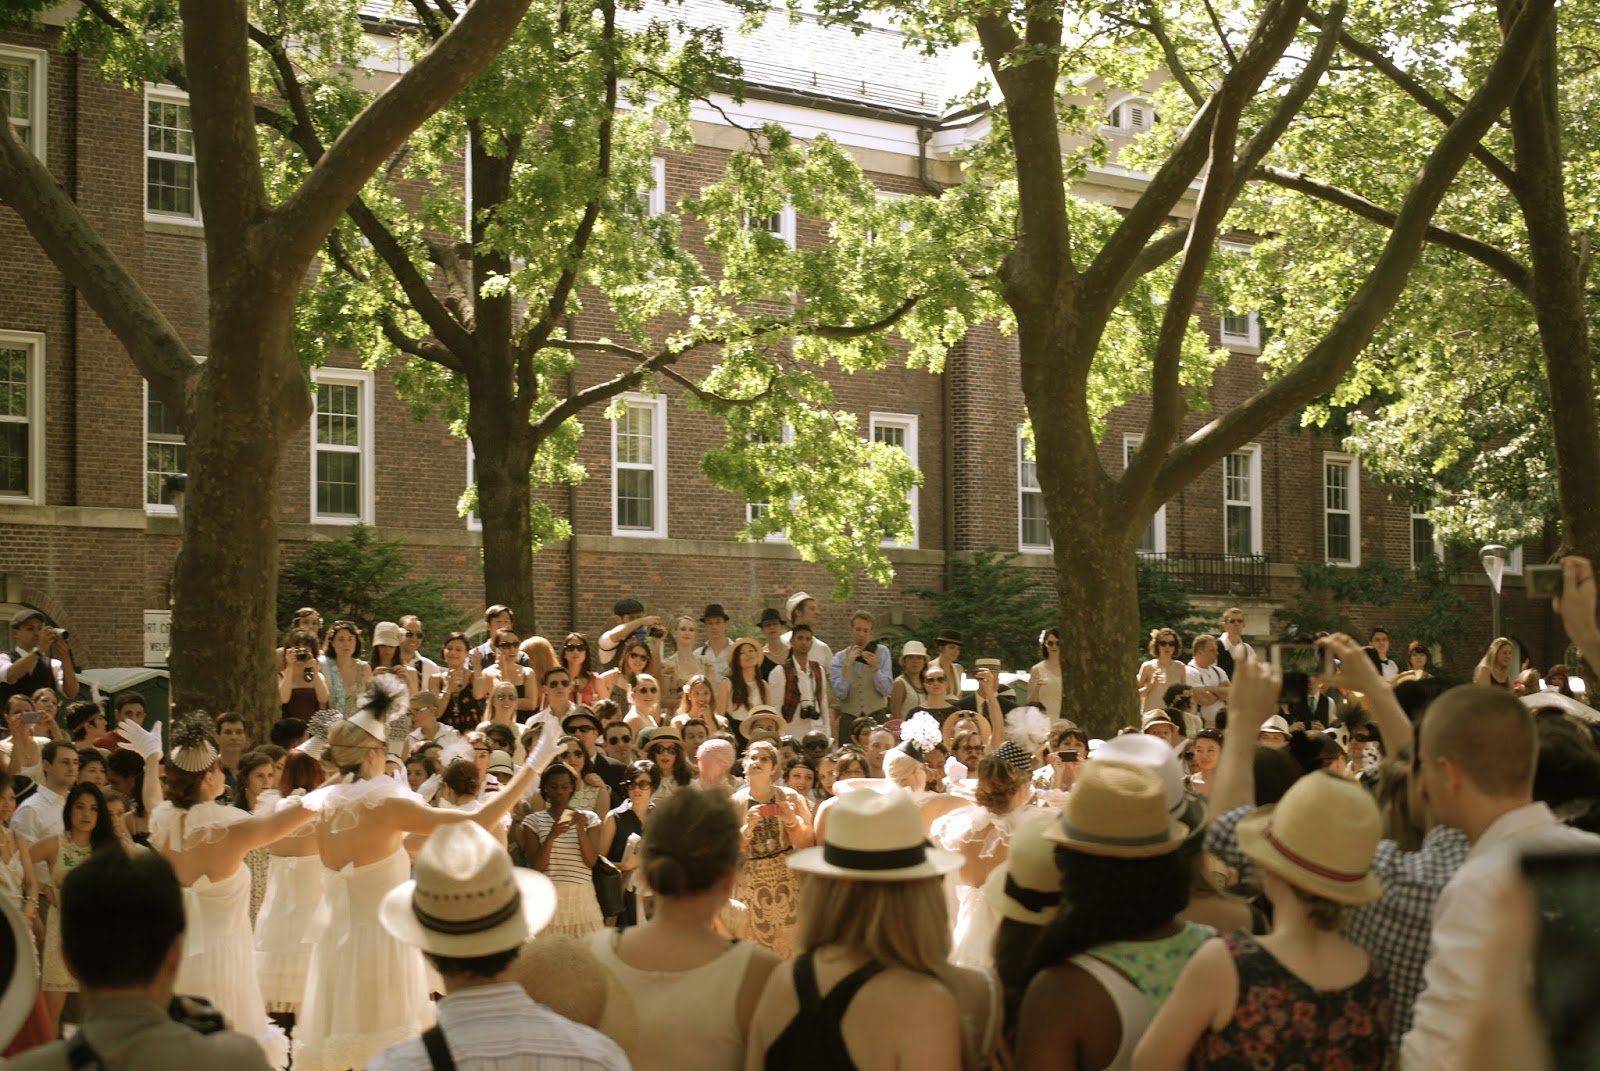 Jazz Age Lawn Party Brings Back The 1920s